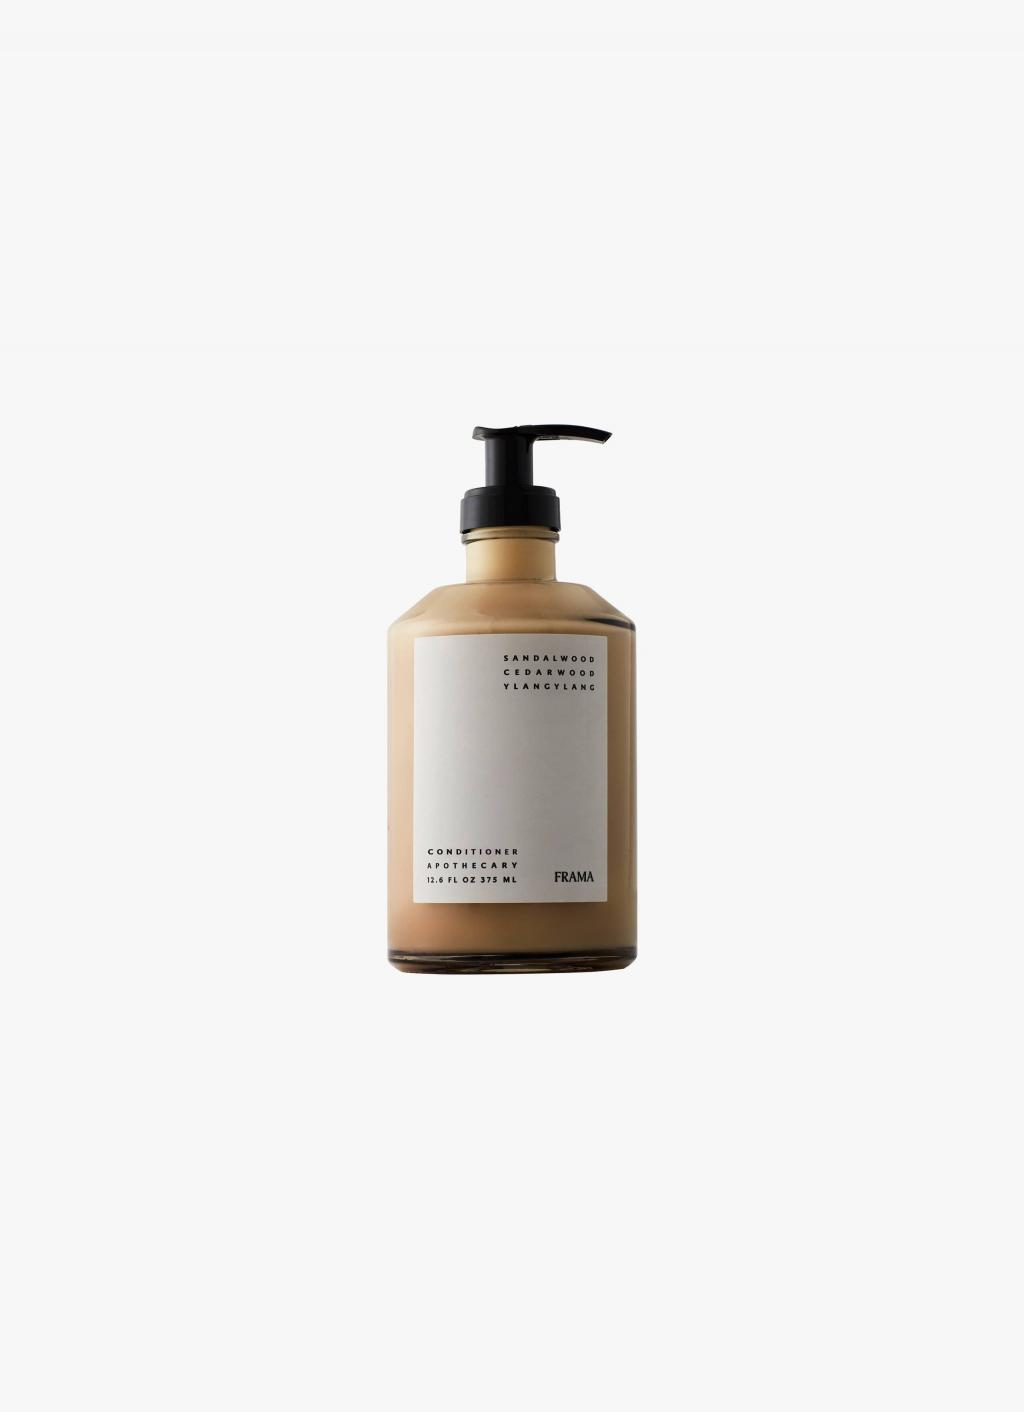 Frama - Apothecary - Conditioner - 375ml